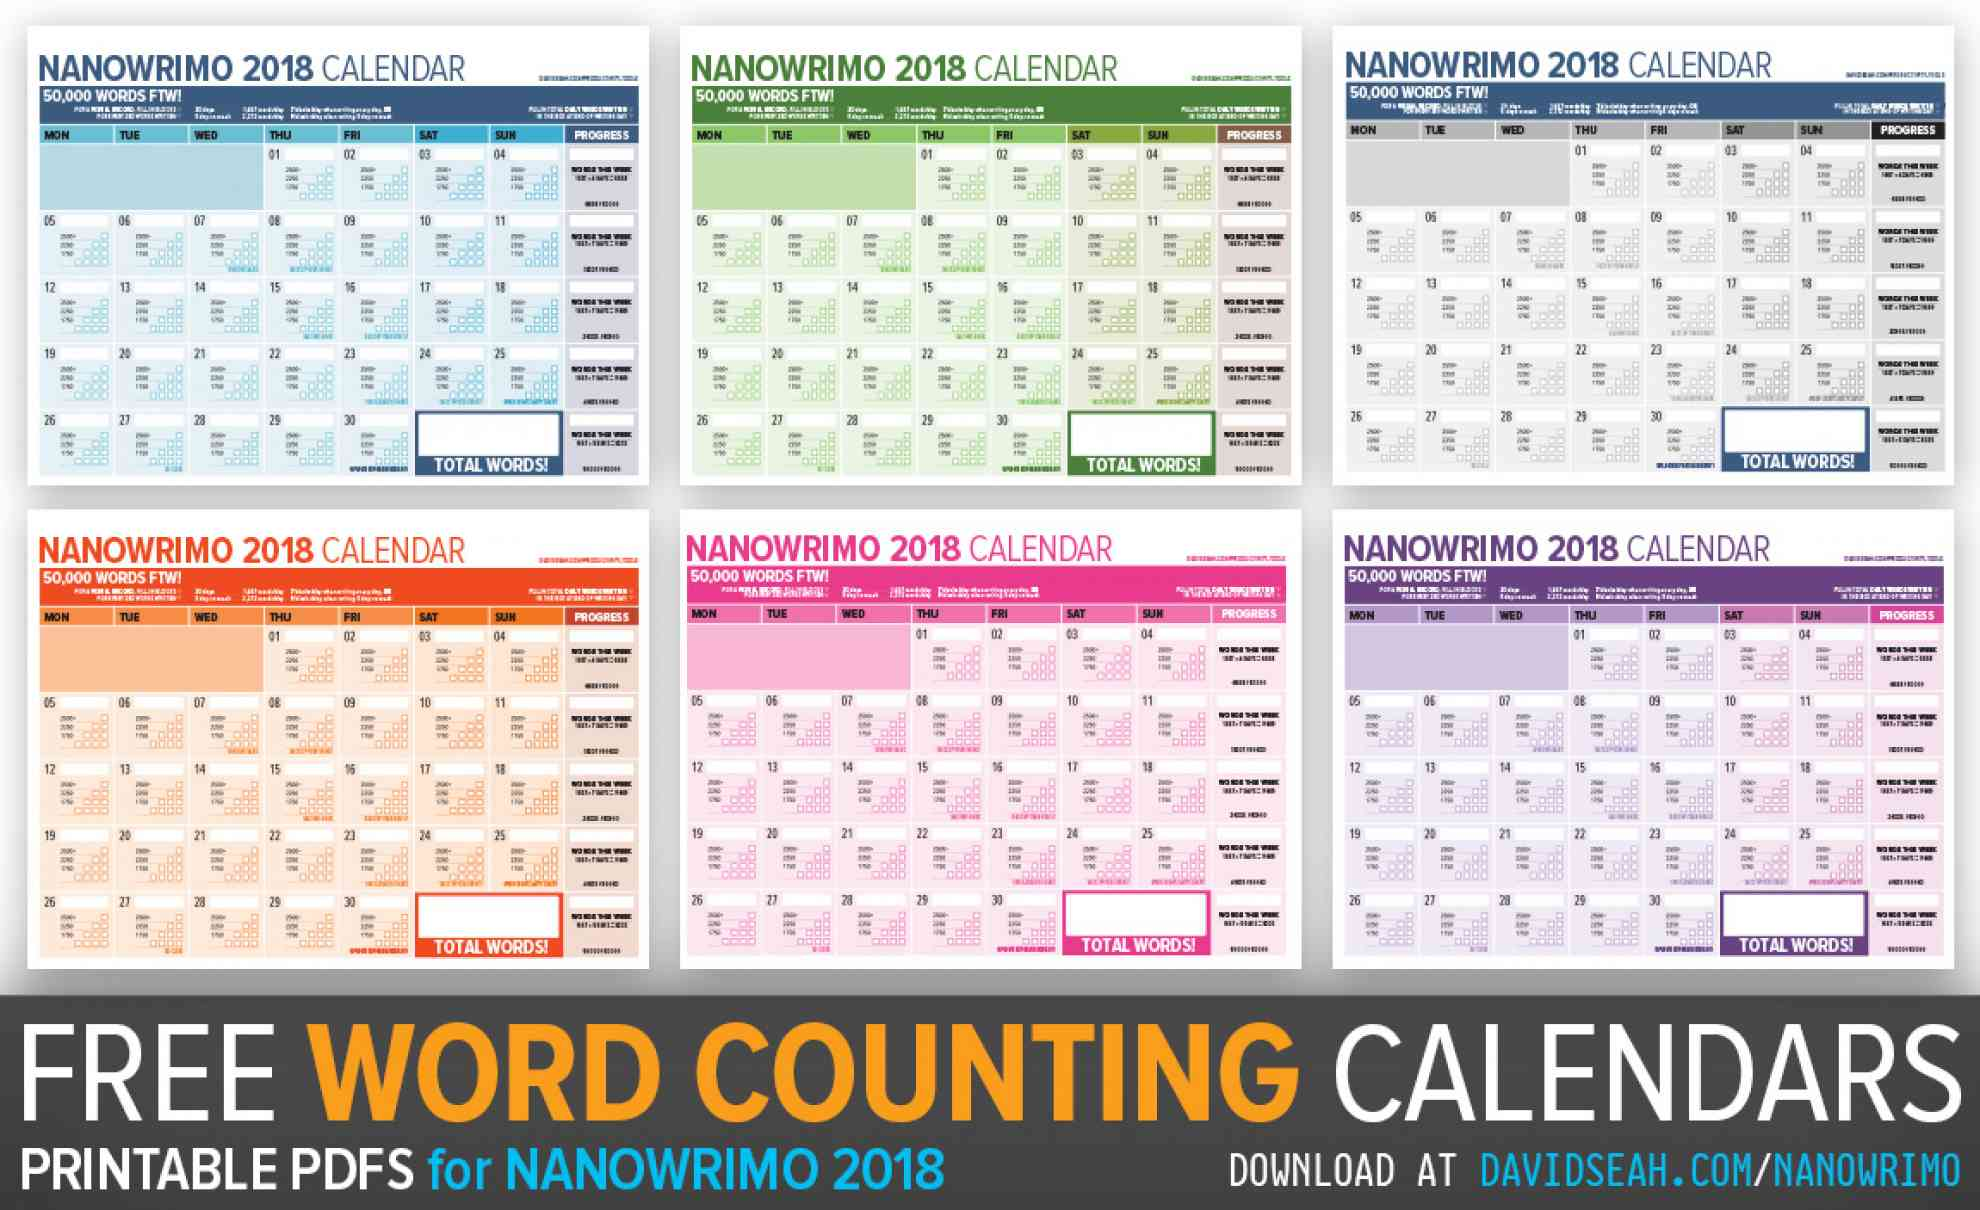 2018 Word Counting Calendar for Tracking Nanowrimo Progress